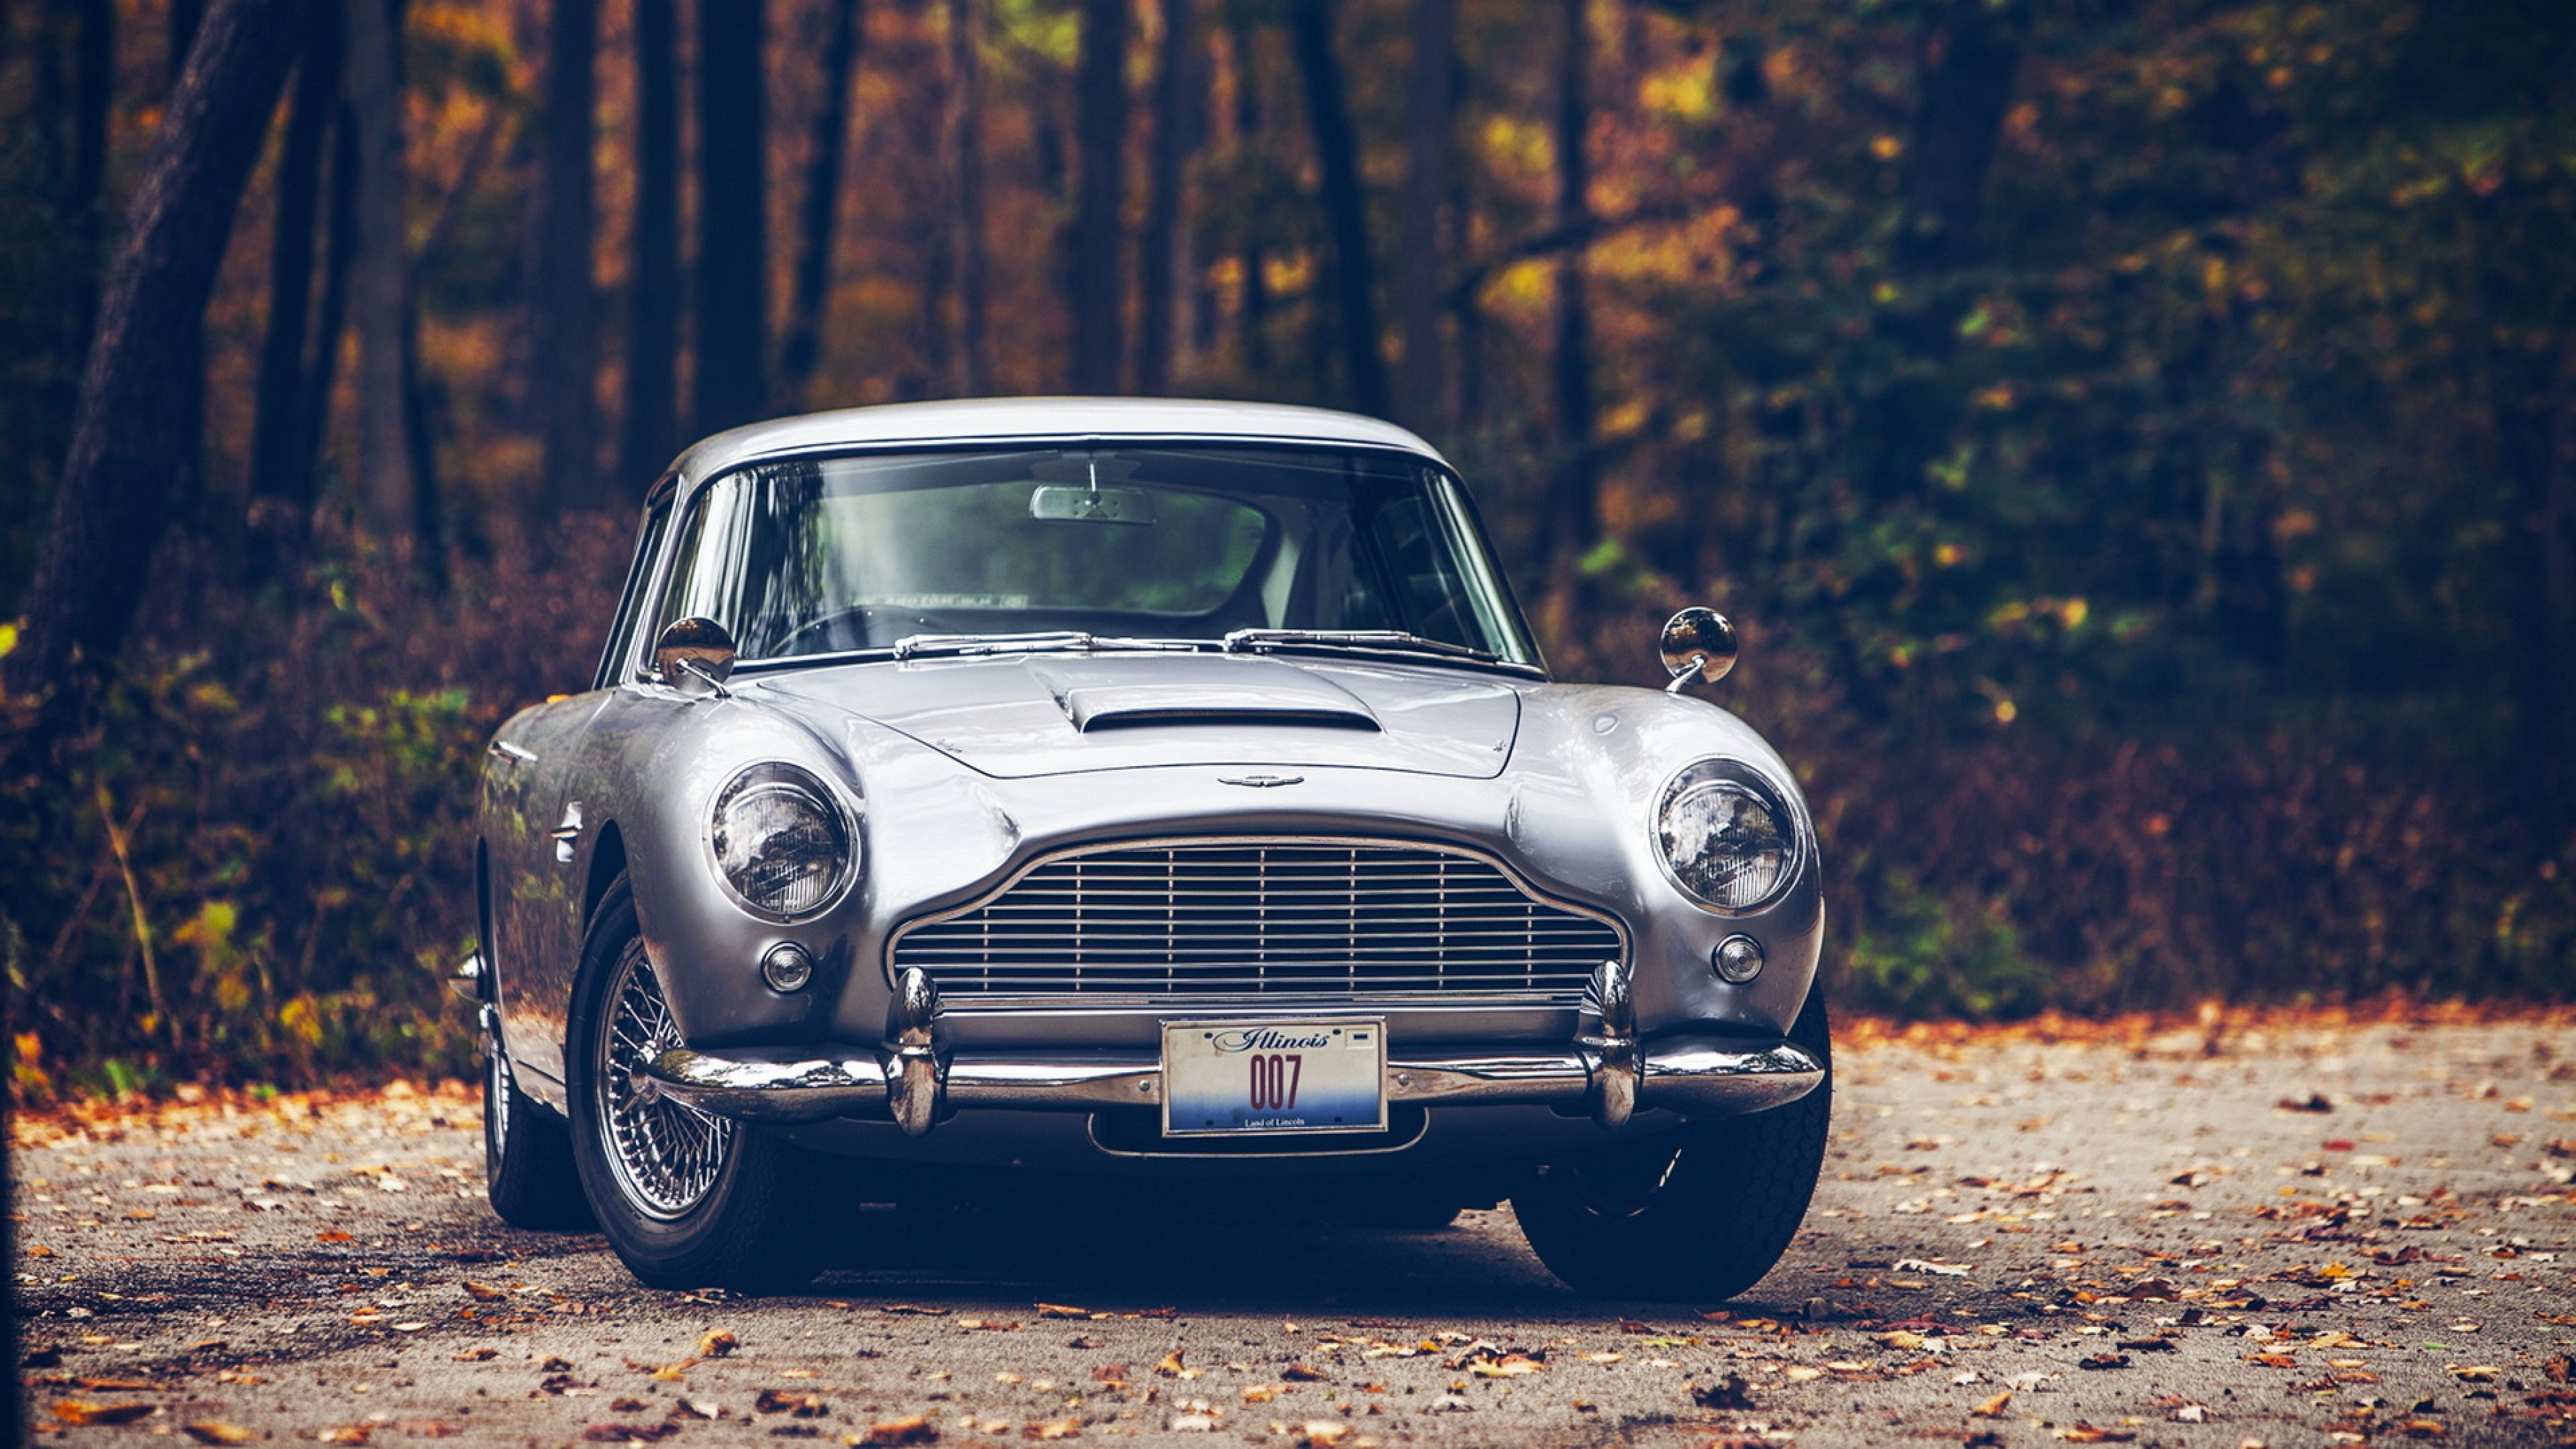 4k Db5 Wallpapers Top Free 4k Db5 Backgrounds